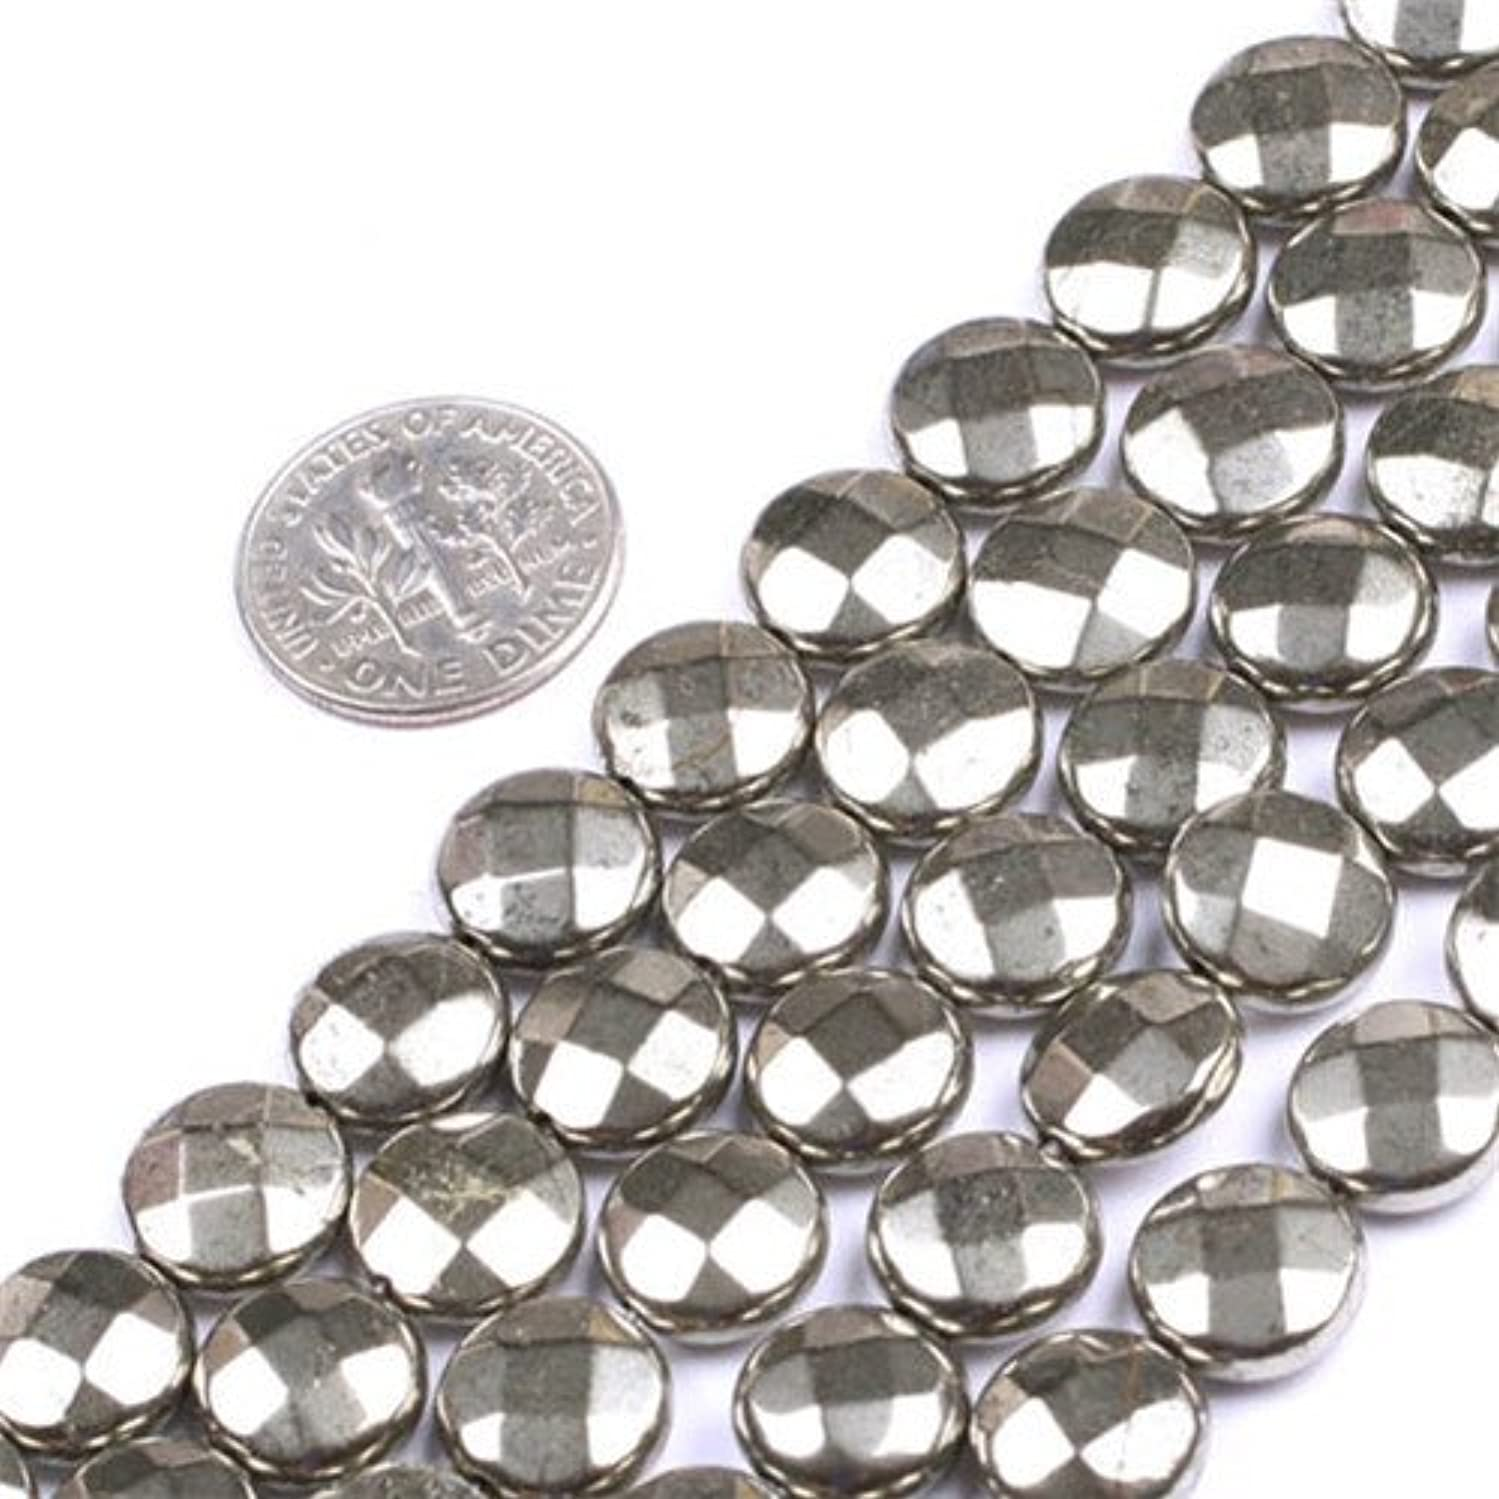 GEM-insid Silver Gray Pyrite Gemstone Loose Beads Natural Energy Power Beads For Jewelry Making 10mm Coin Faceted 15